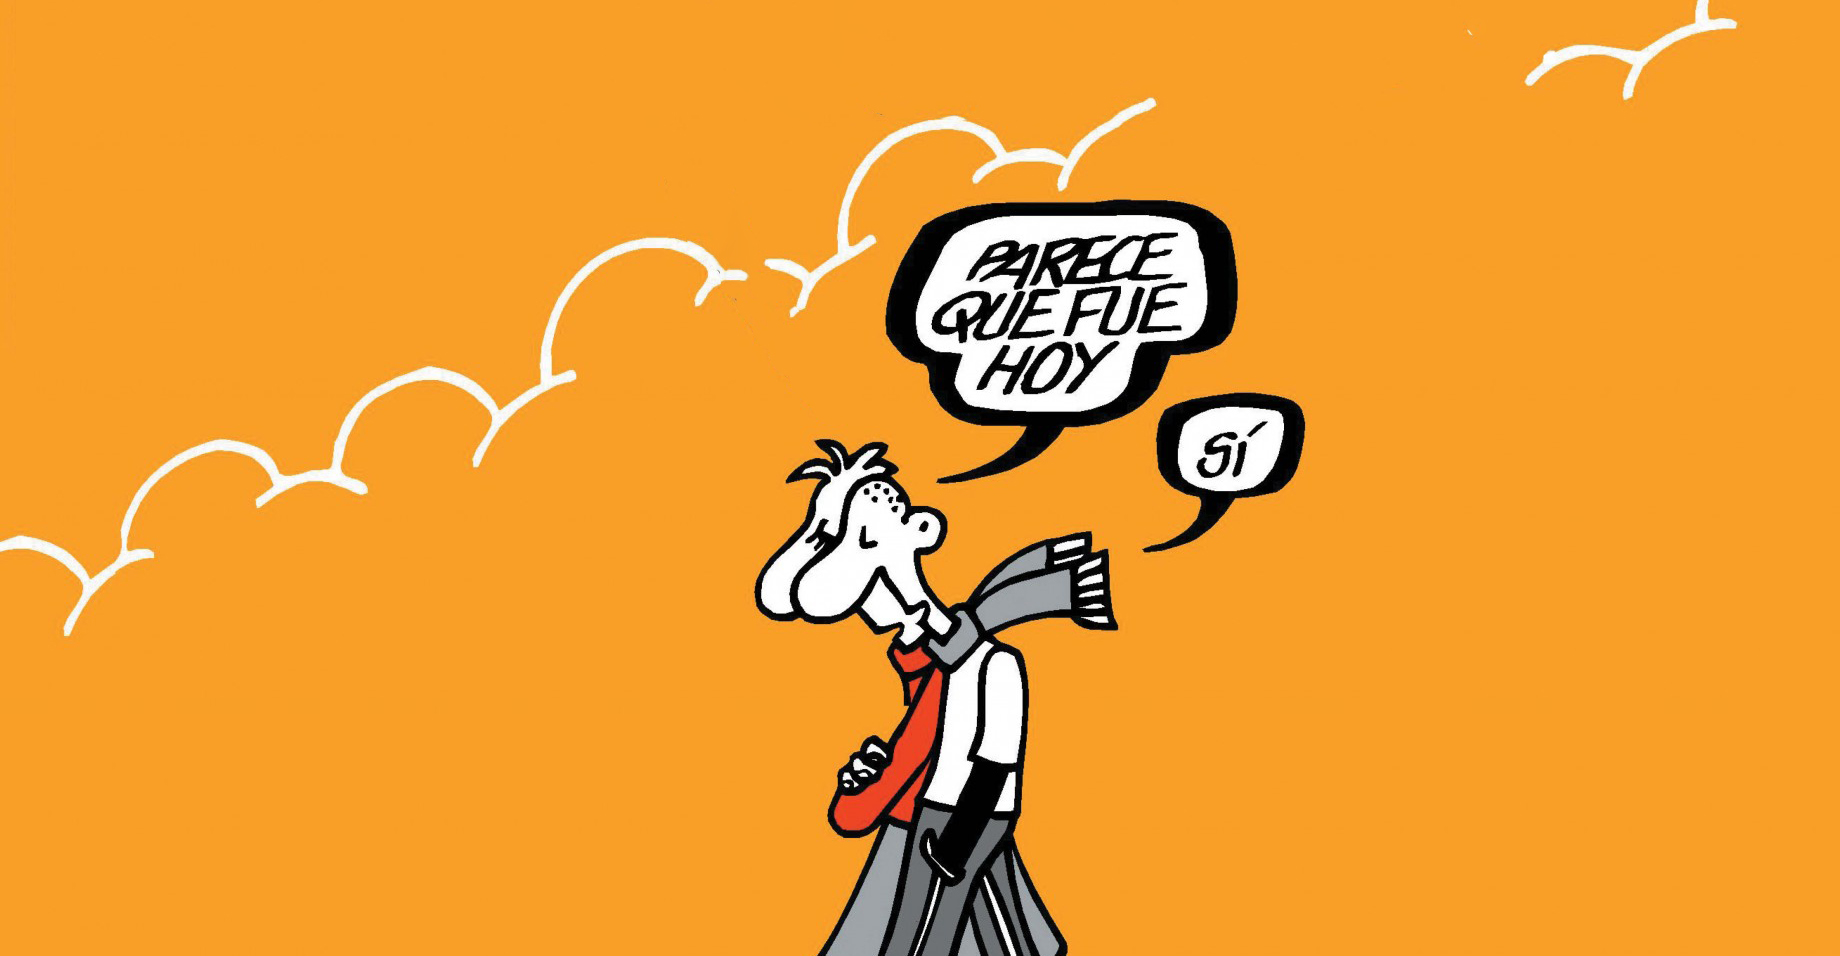 Forges fallece hoy